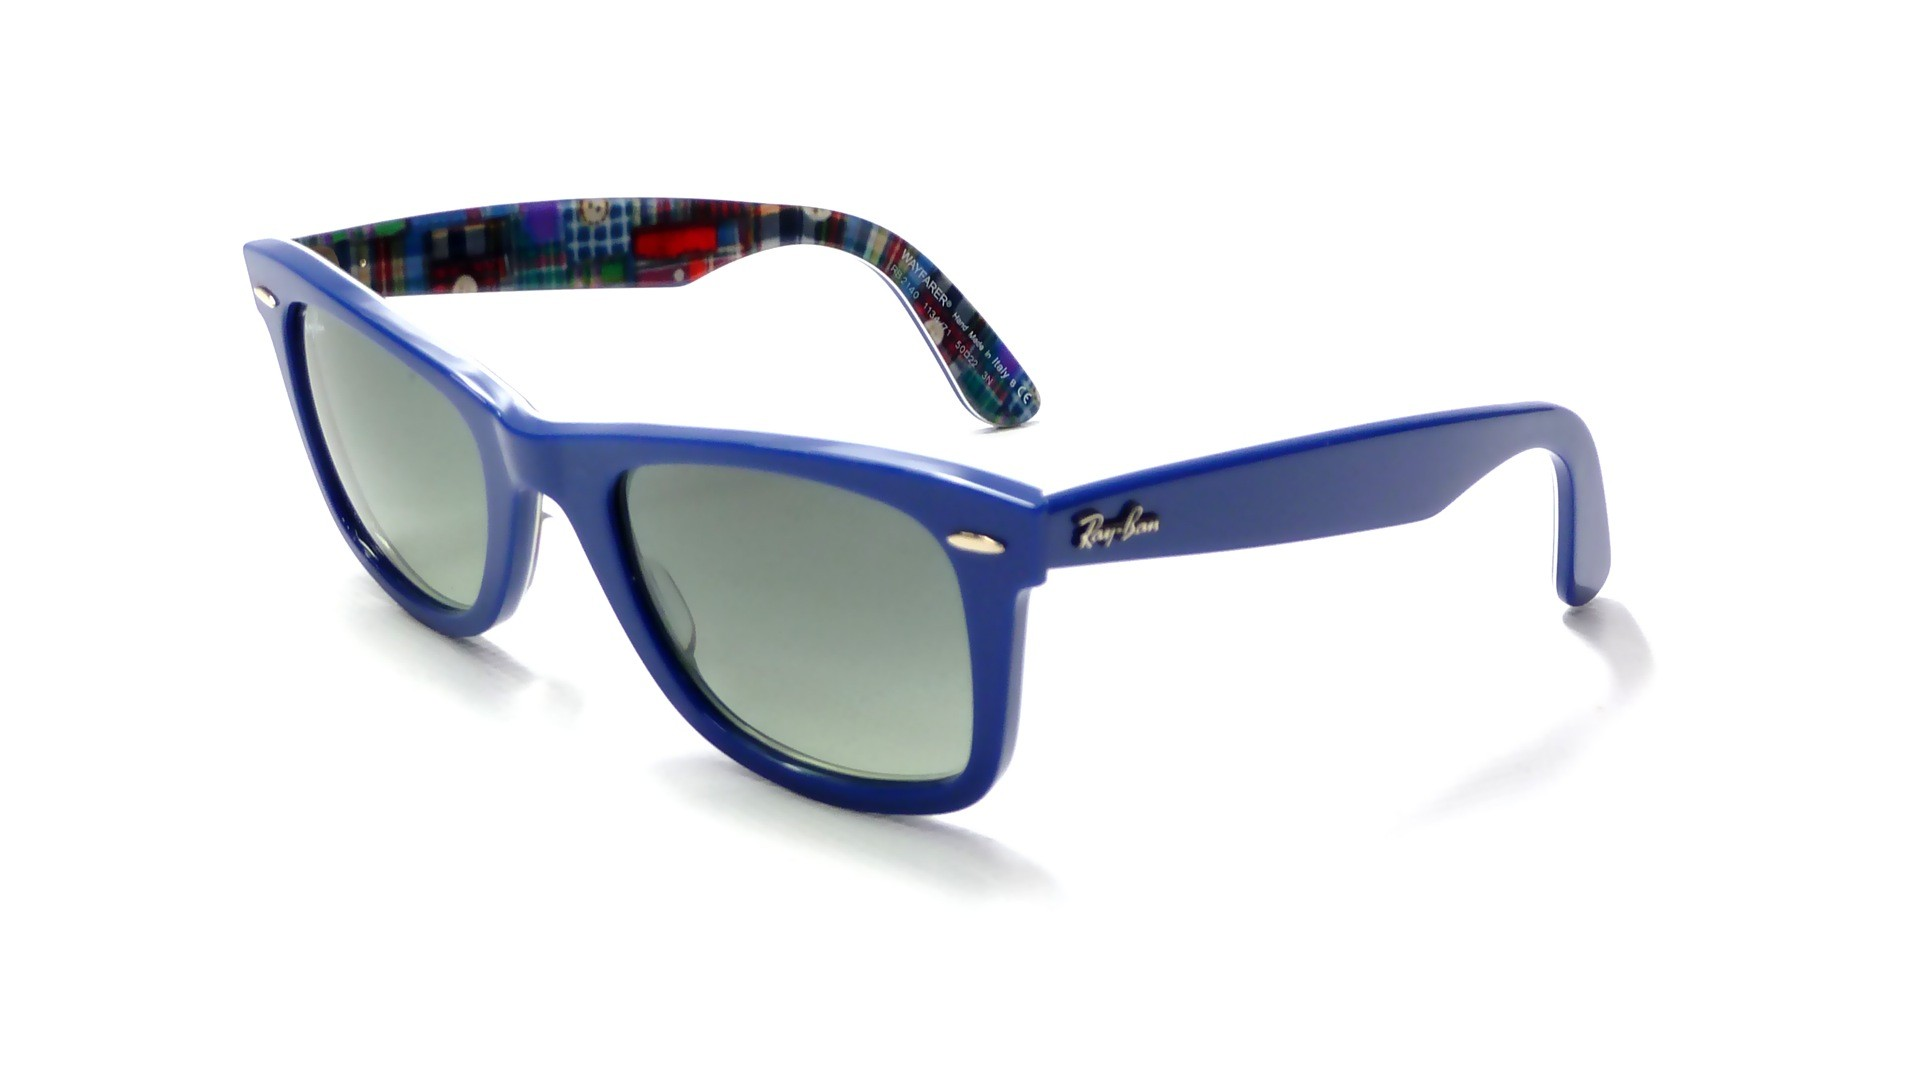 Ray Ban Clubmaster Limited Edition